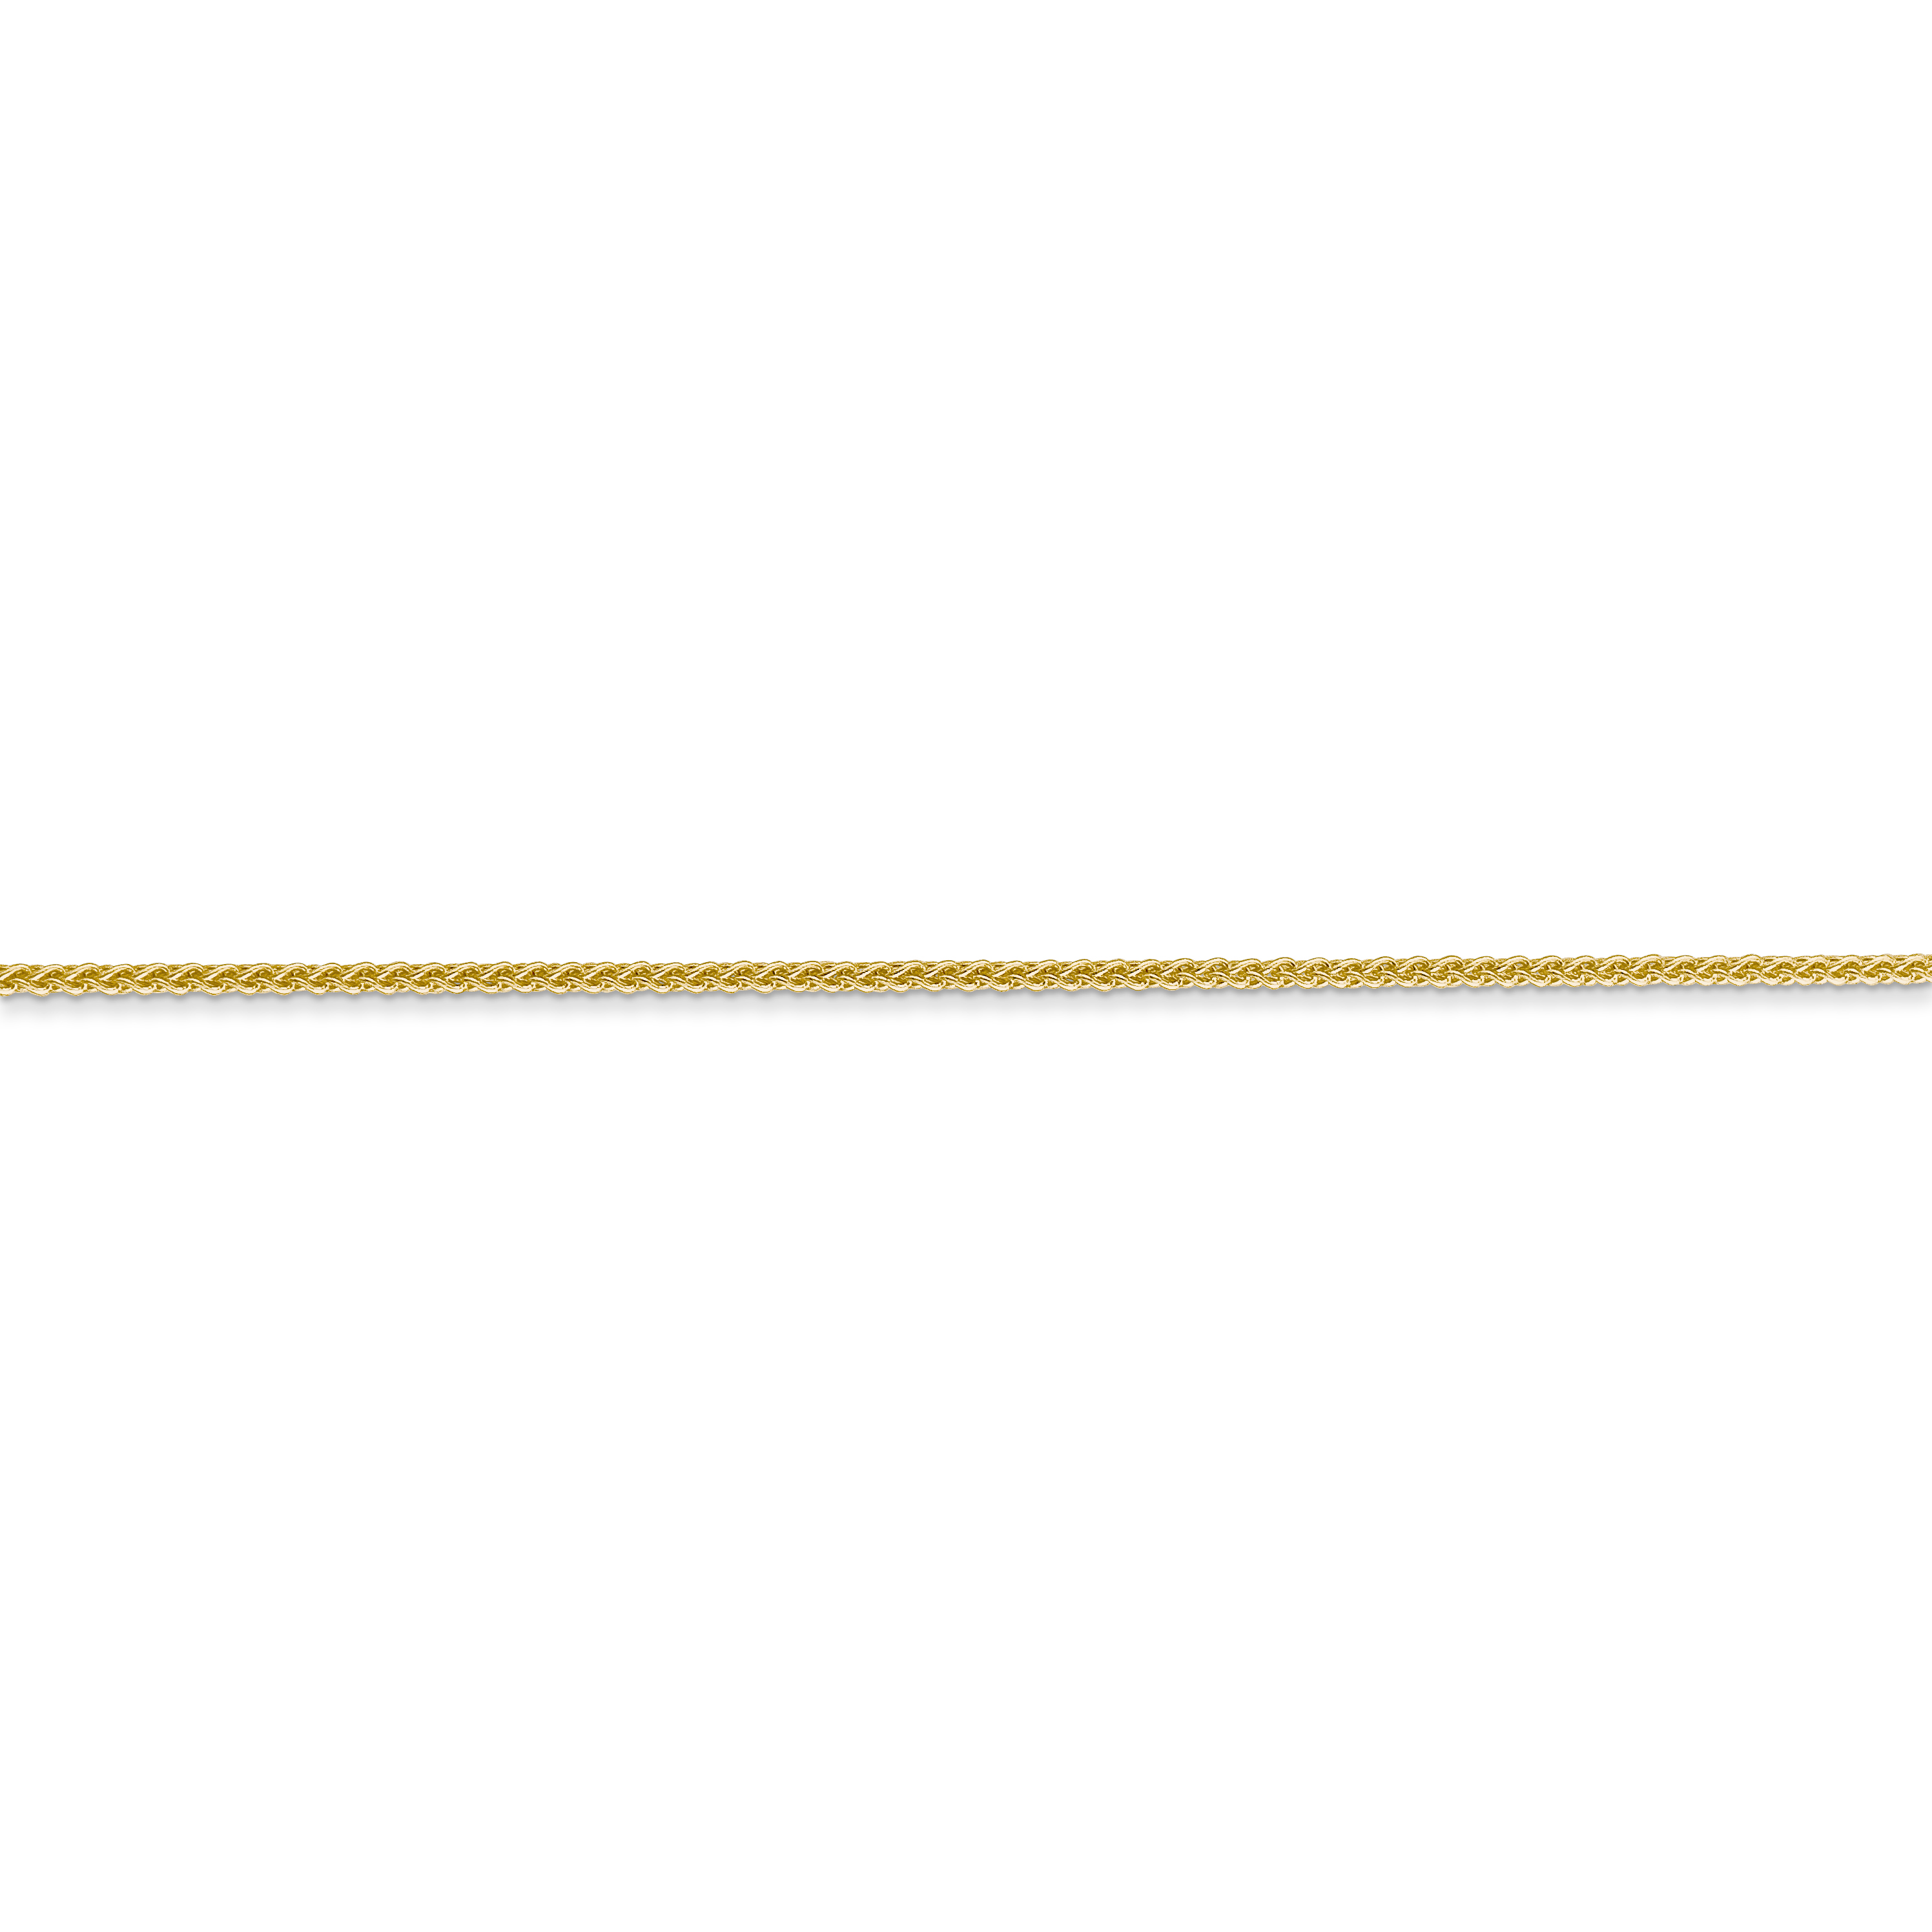 14k Yellow Gold 1mm Solid Spiga Chain Necklace 24 Inch Pendant Charm Wheat Fine Jewelry Gifts For Women For Her - image 4 of 5